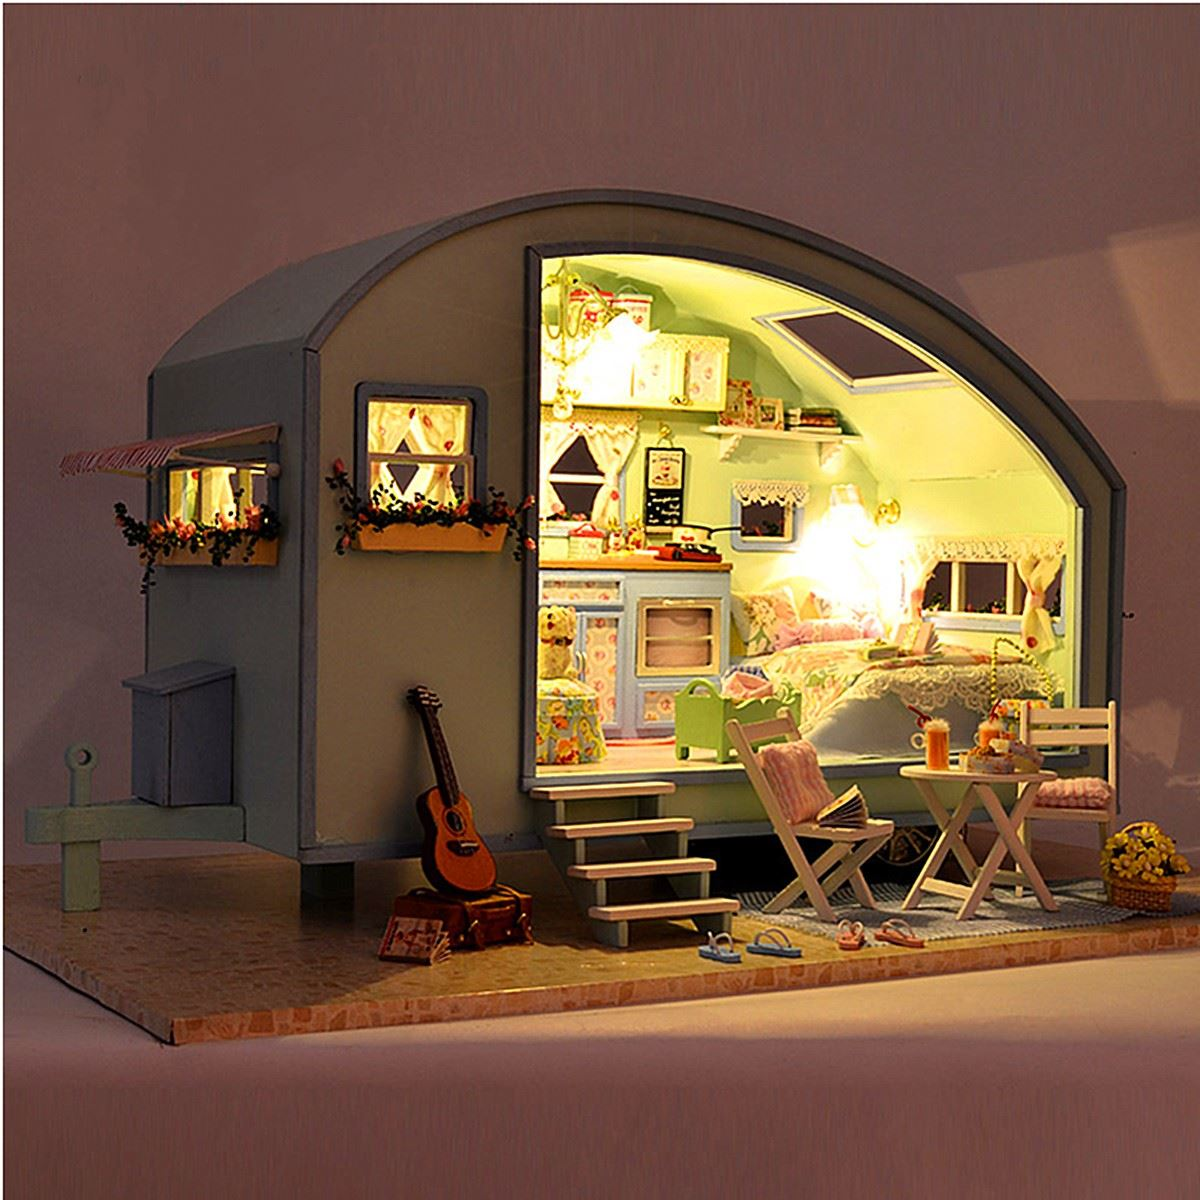 Us 4599 Diy Dollhouse Miniature Wooden Assembled With Voice Activated Light Music Handmade Kits Building Model Travel Caravan For Girls In Doll